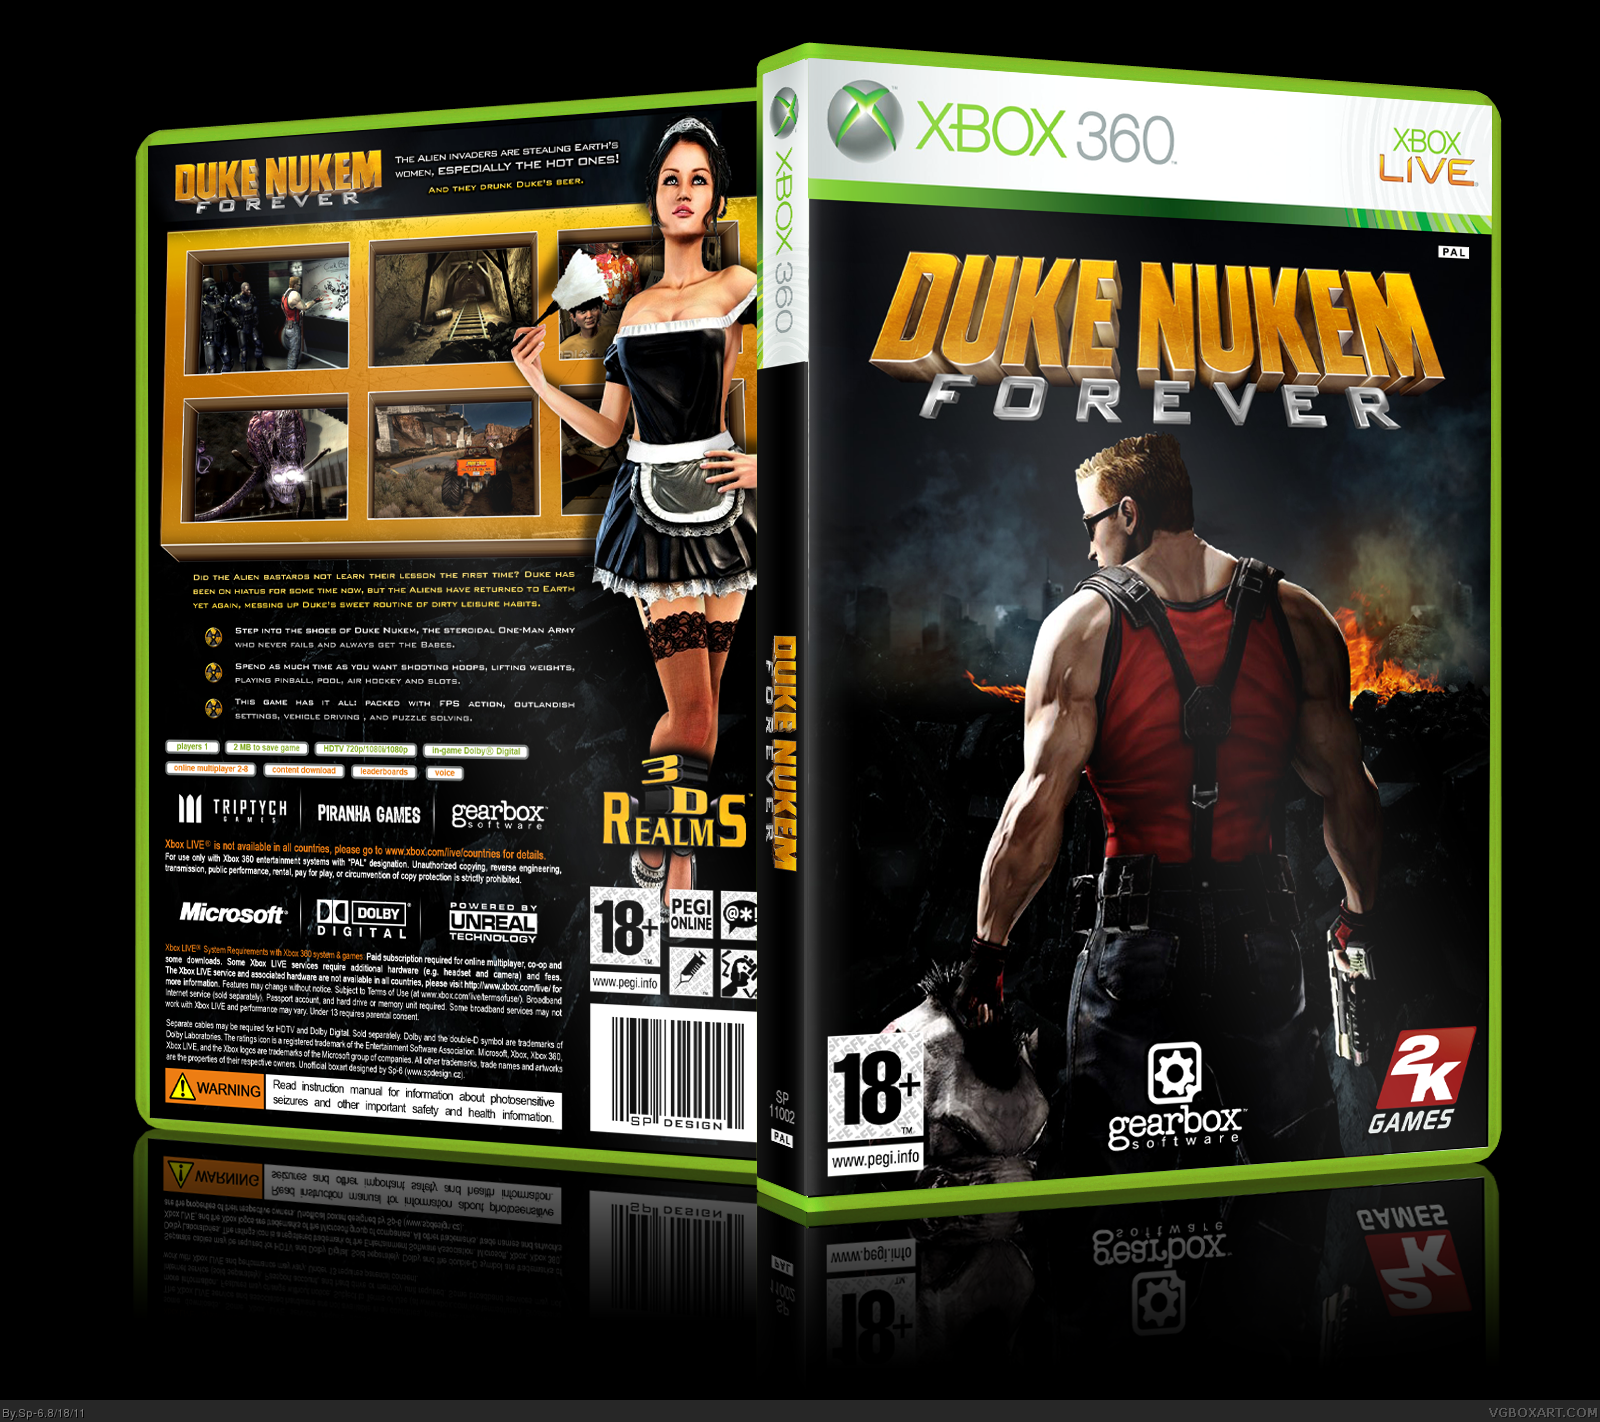 Duke Nukem Forever box cover